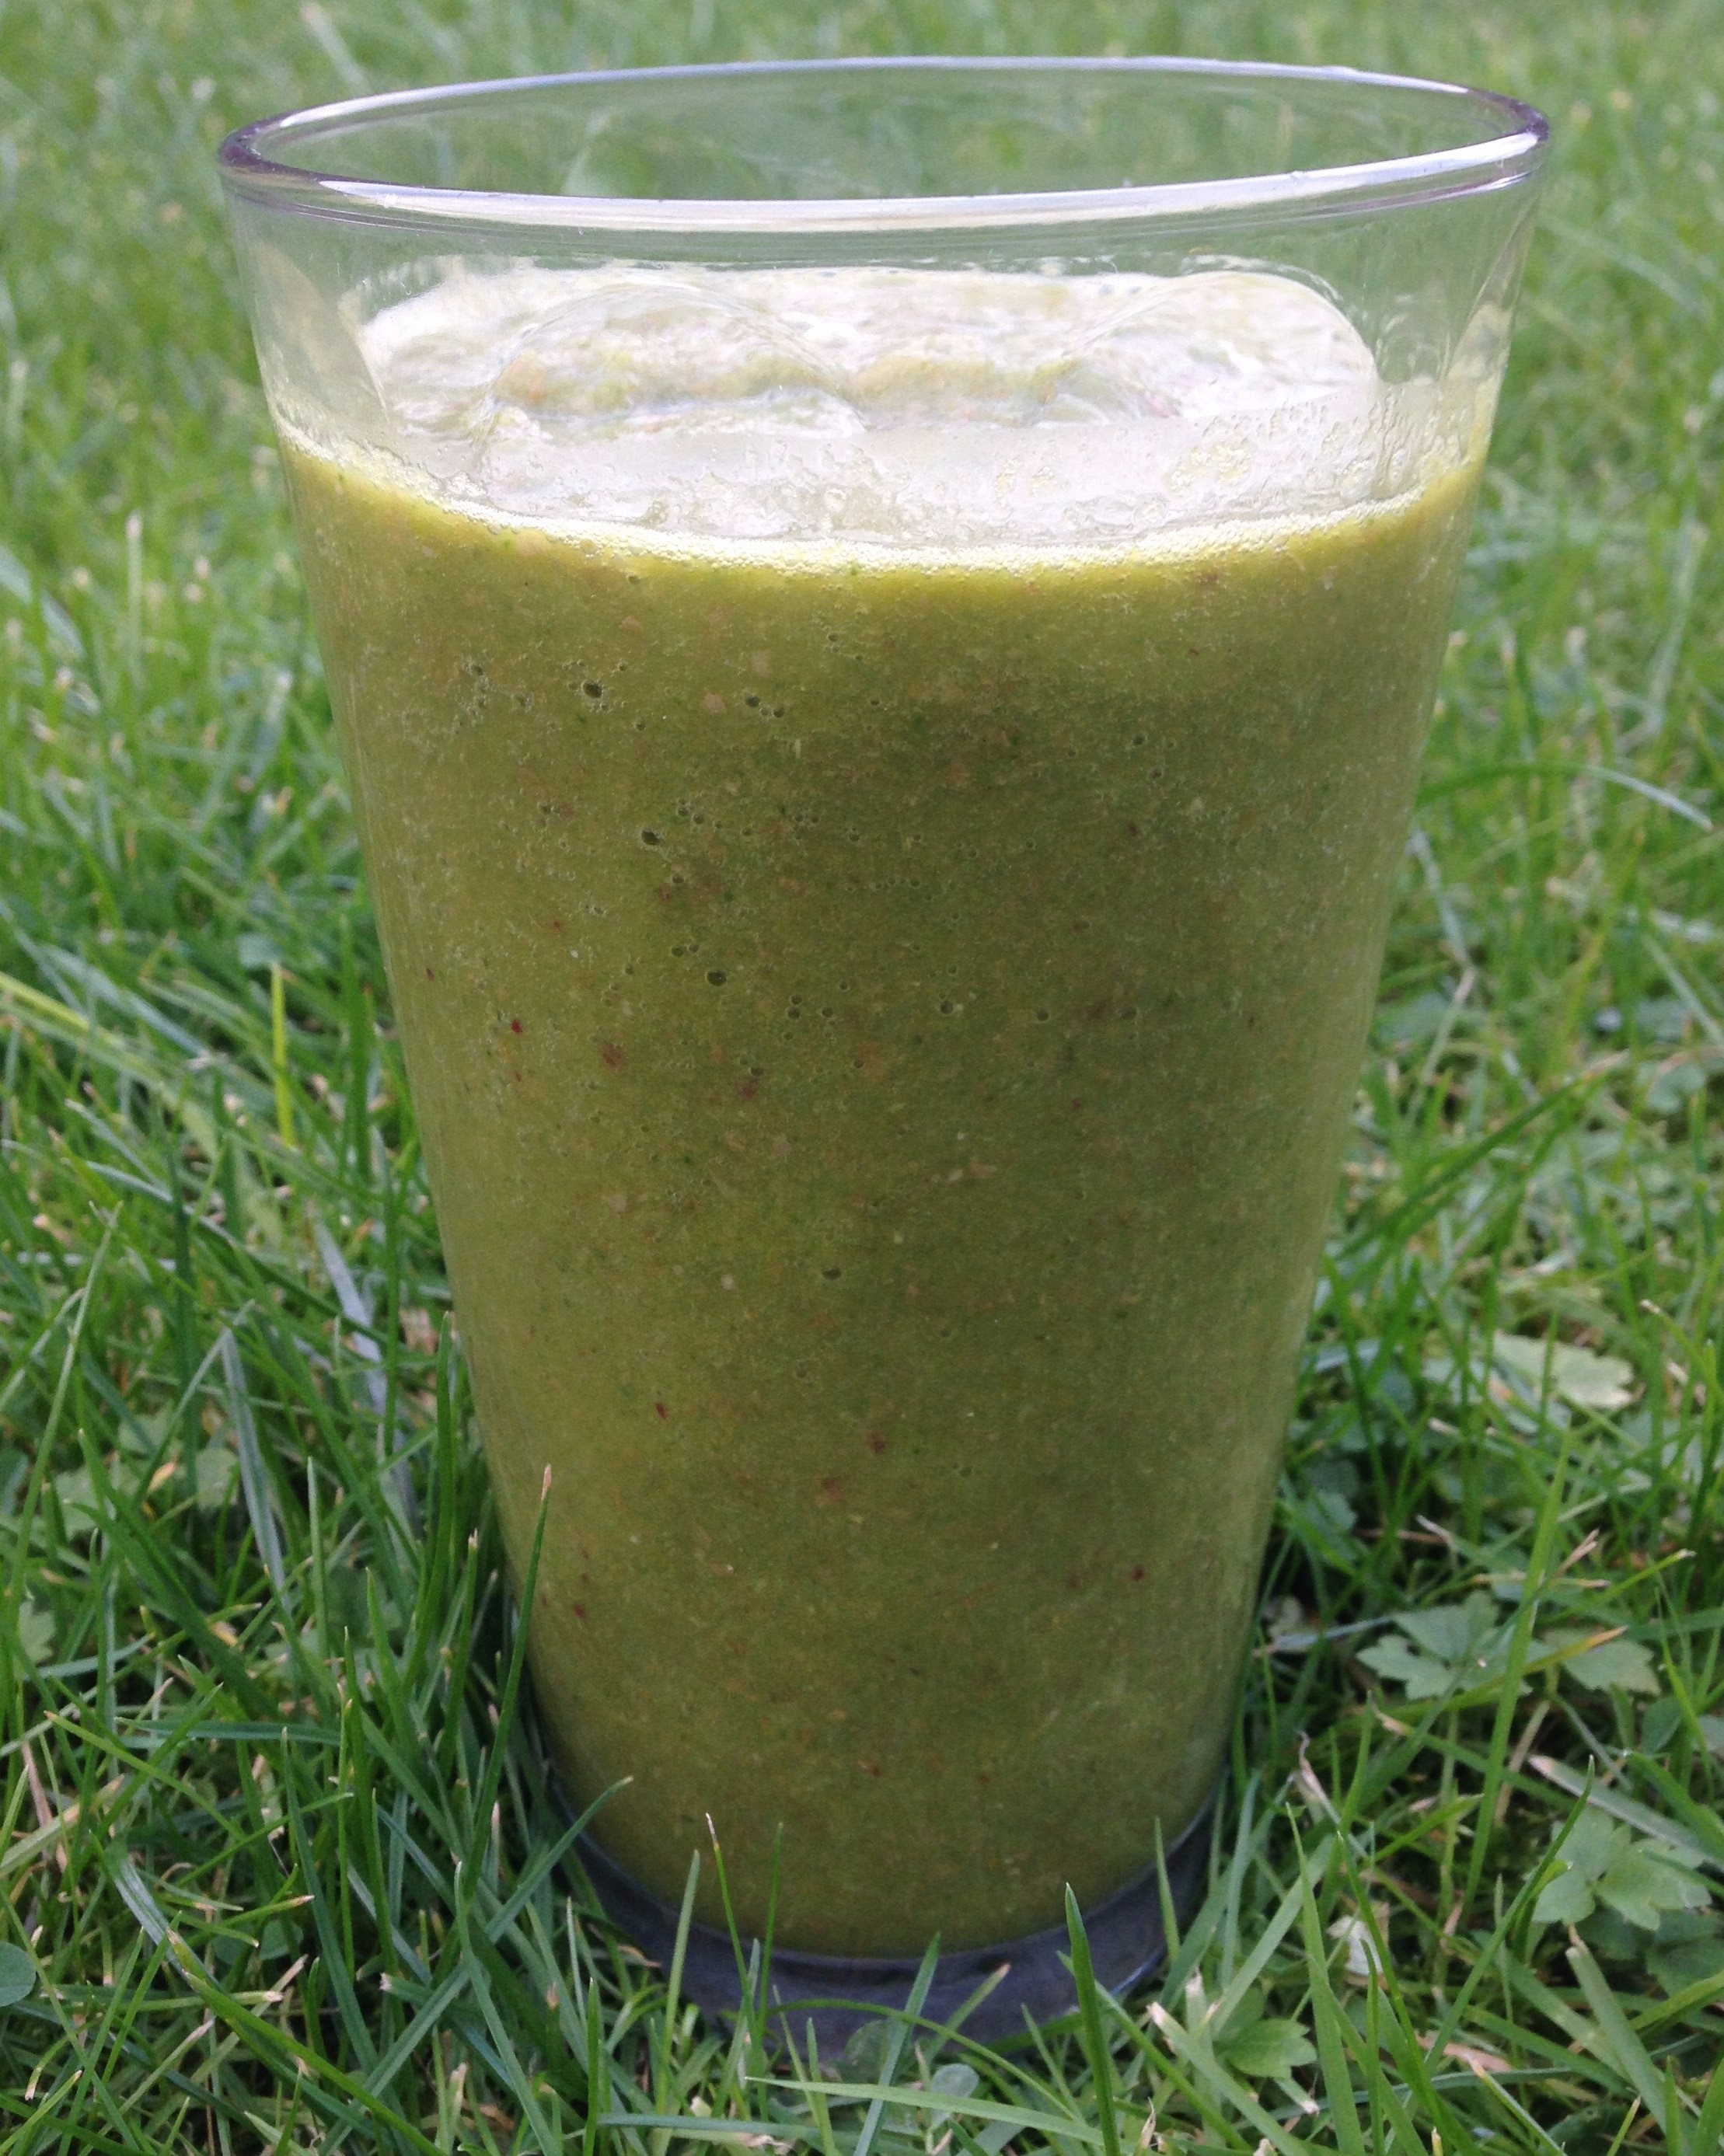 Kale and Lemon Smoothie